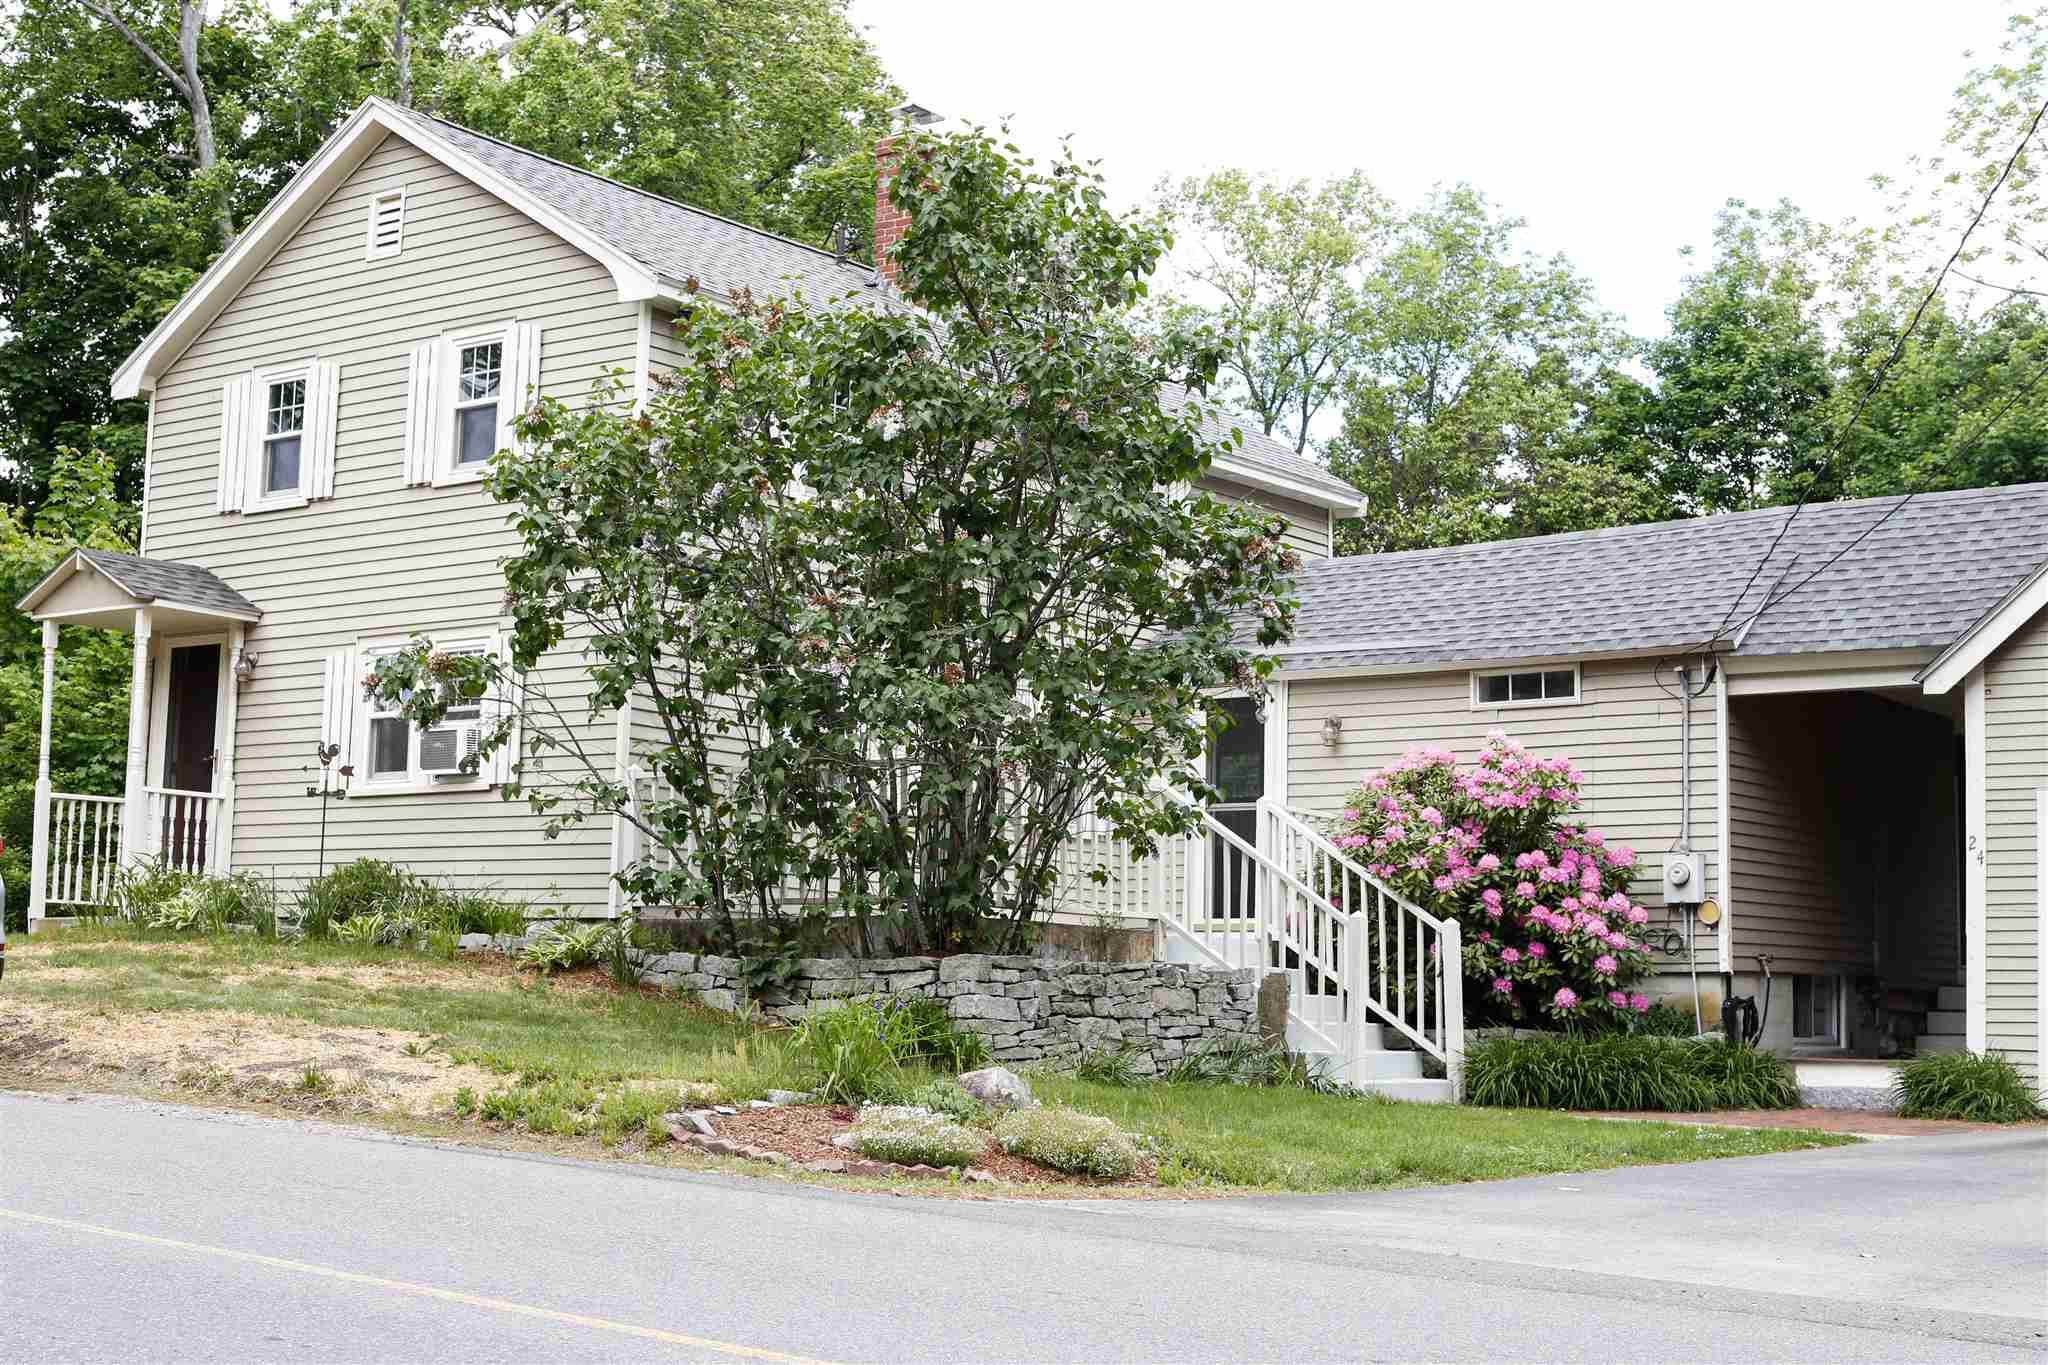 MLS 4808874: 24 Merrimack Road, Milford NH